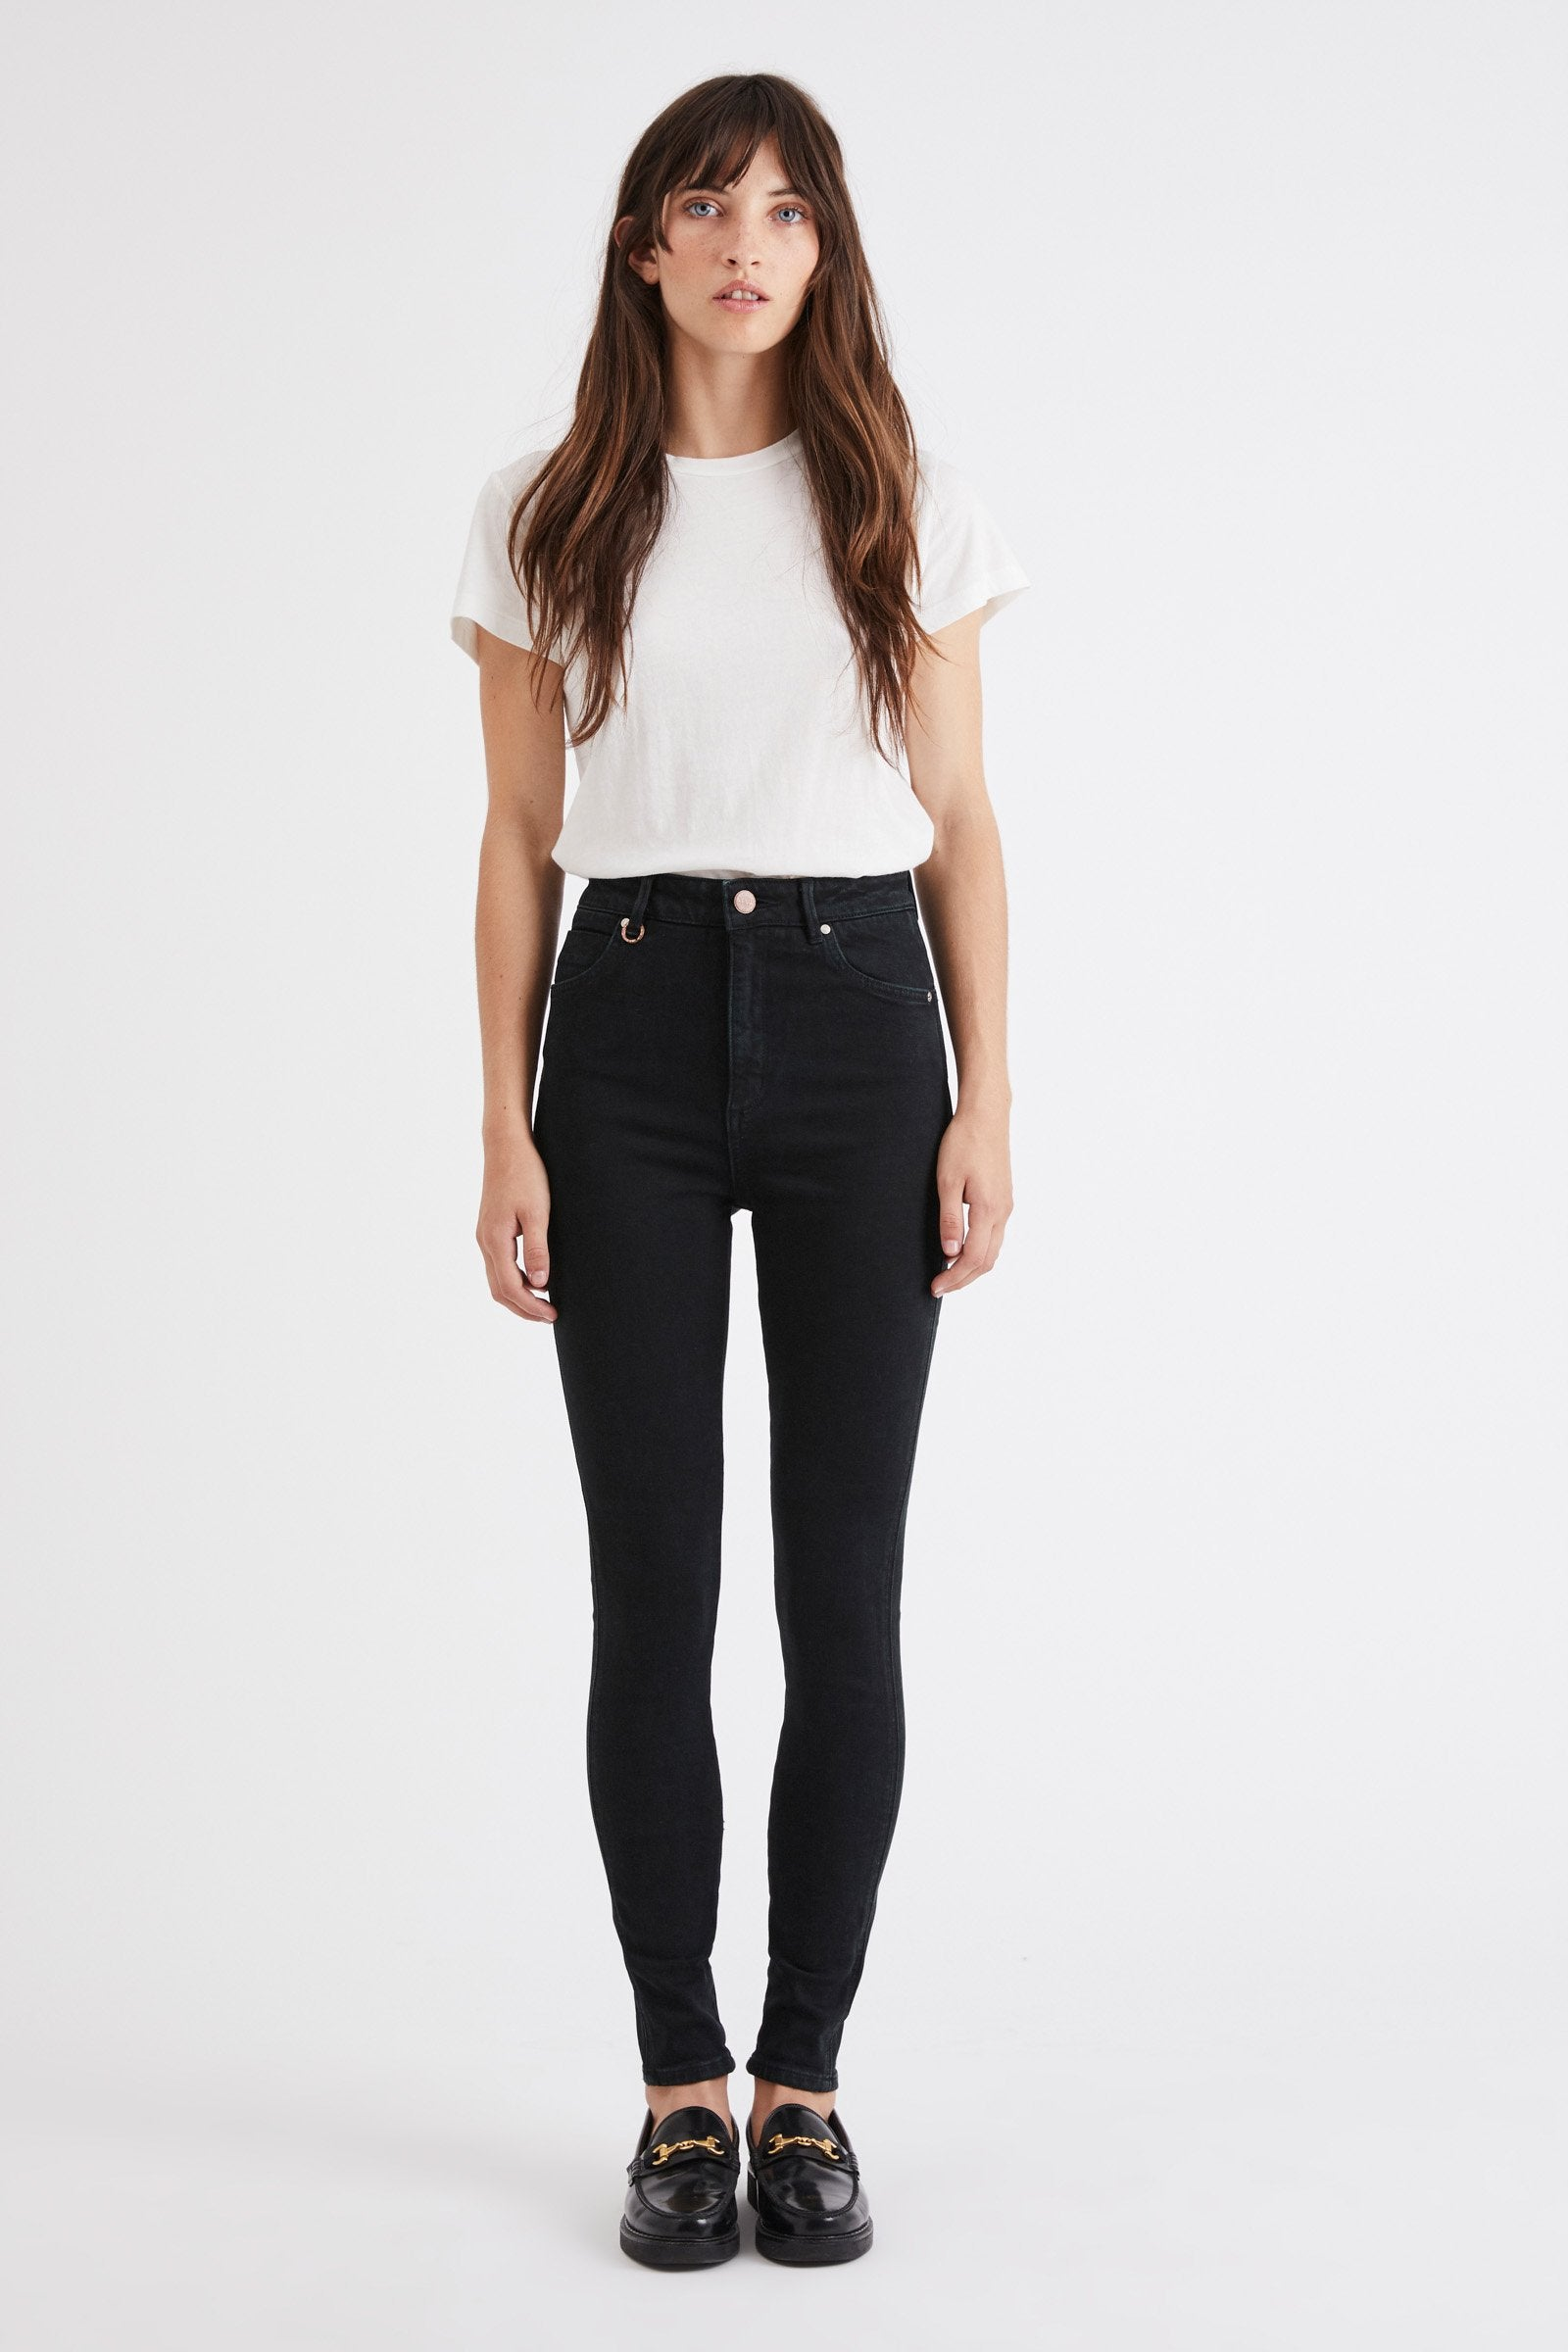 Marilyn Skinny - Zero Rose Black